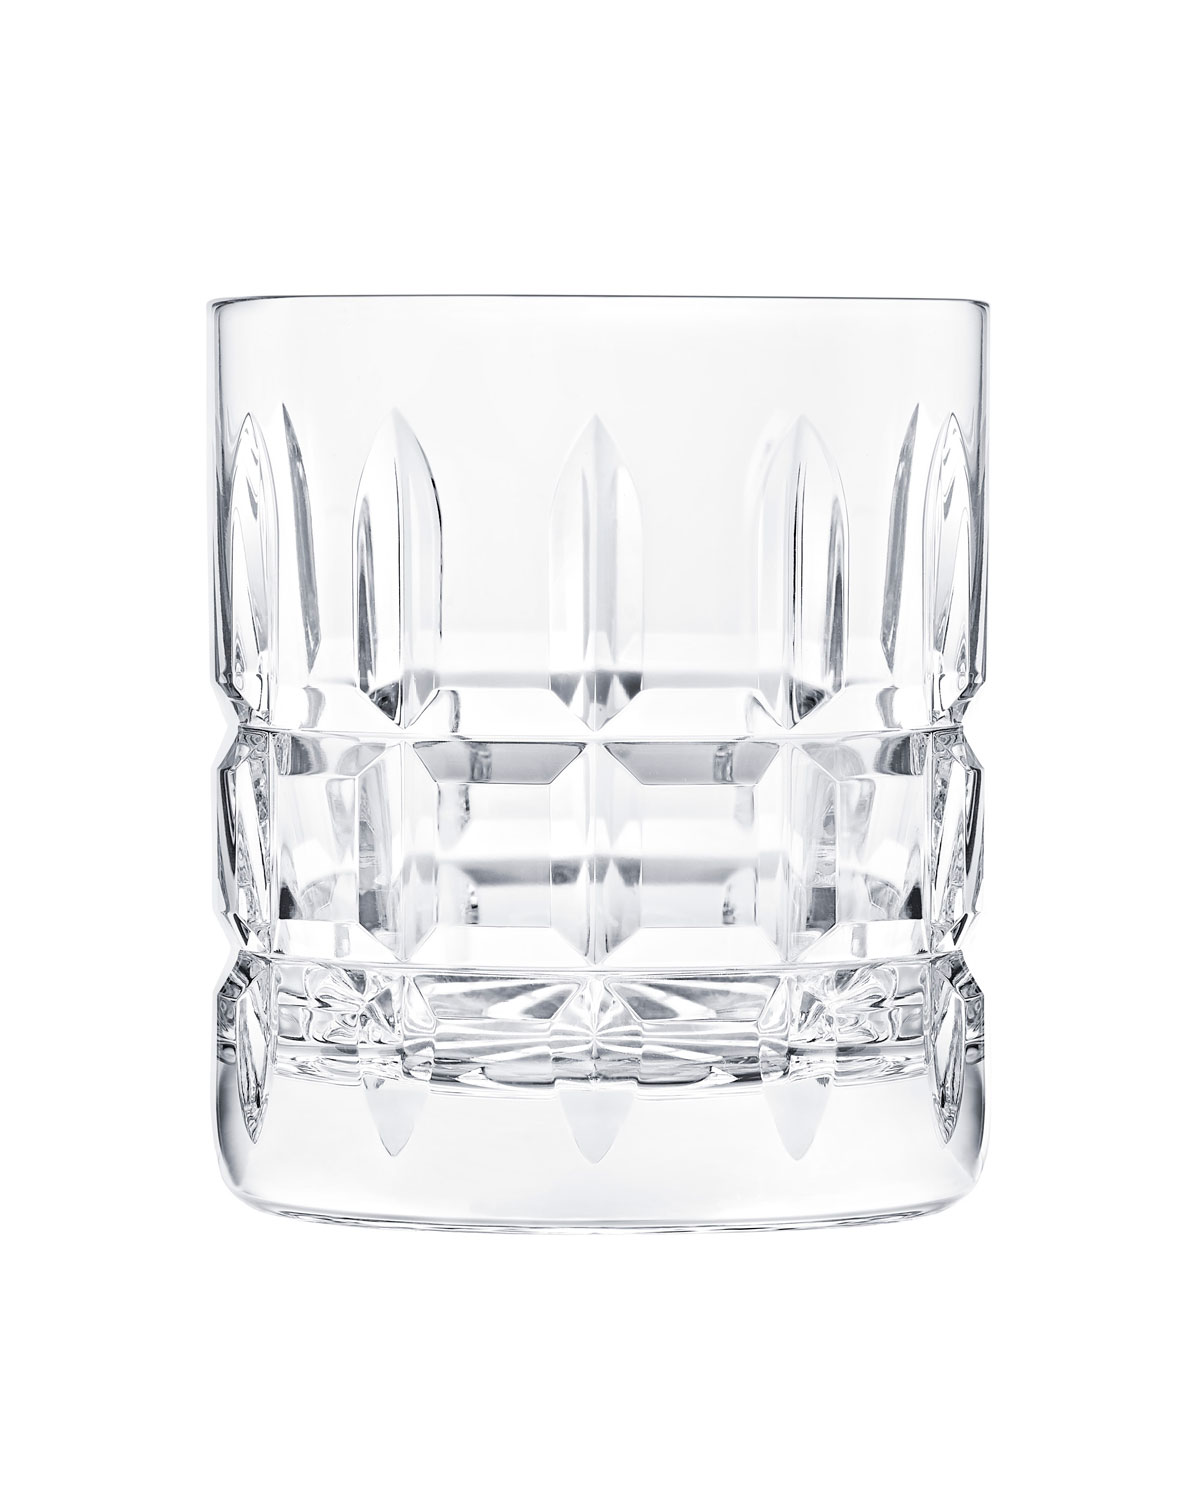 Saint Louis Crystal Clothing MANHATTAN DOUBLE ROCK GLASS